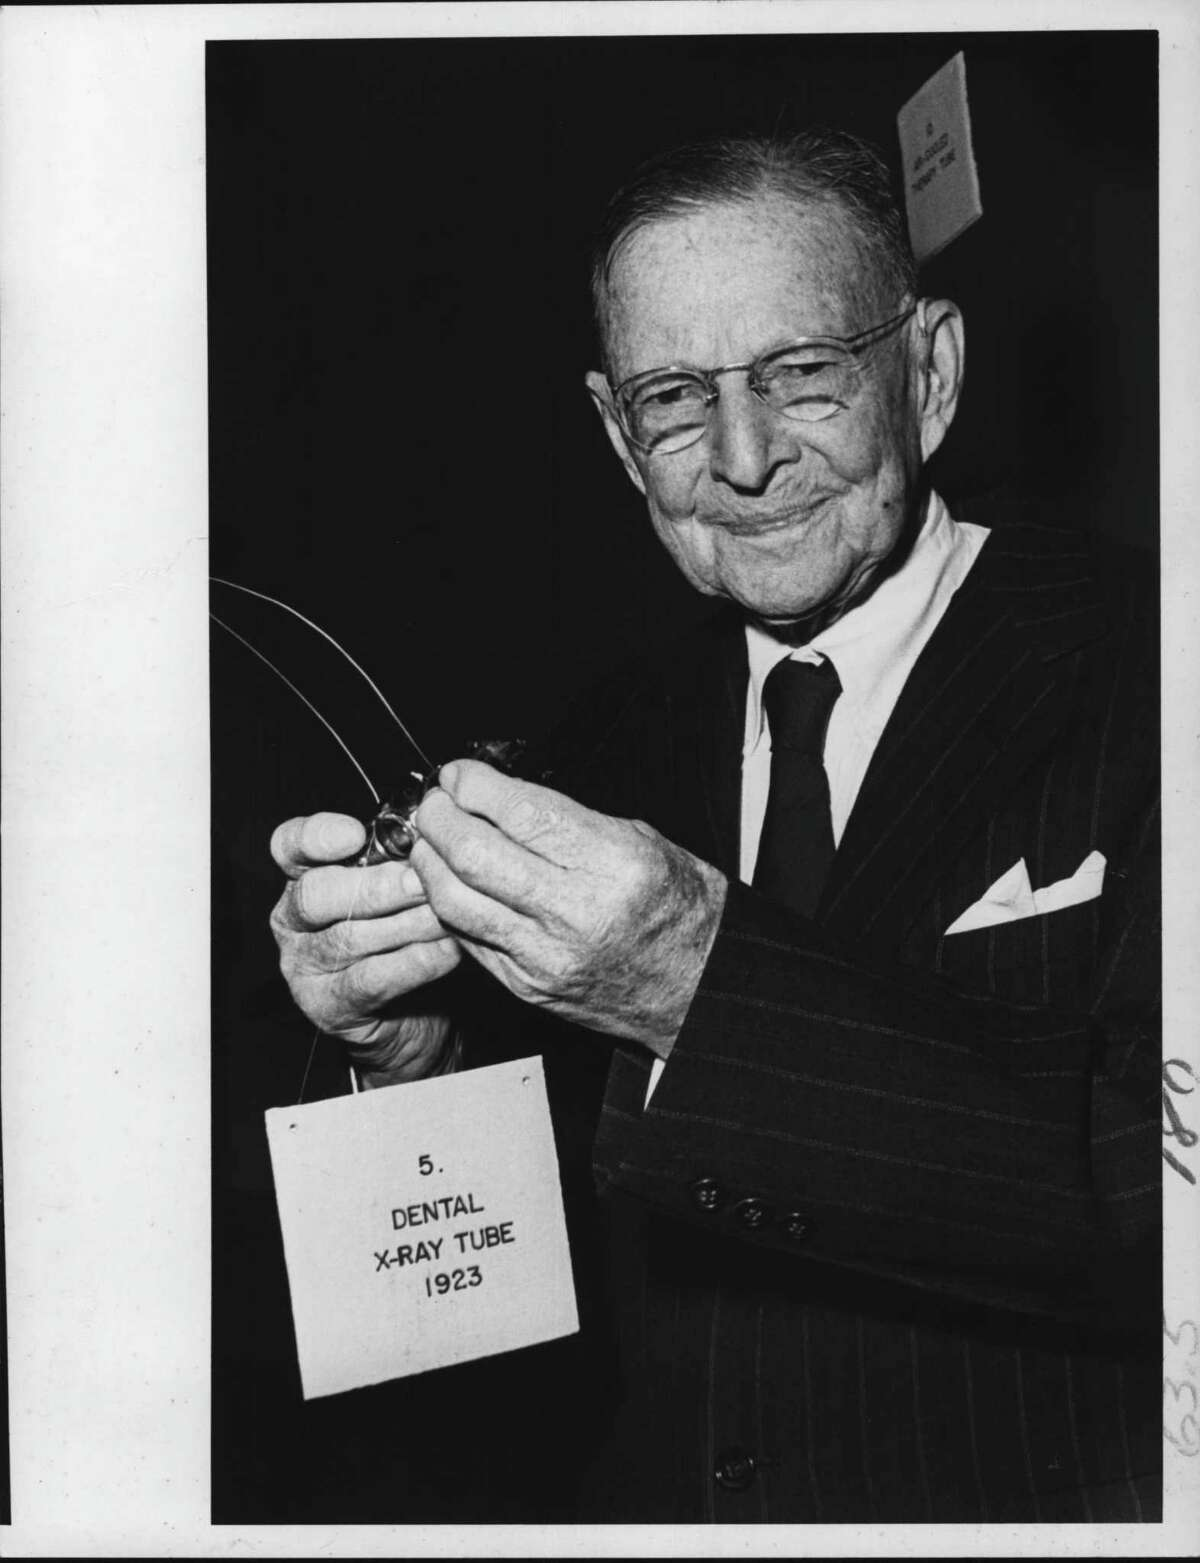 Dr. William D. Coolidge with dental x-ray tube in New York. January 1971 (Raymond B. Summers/Times Union Archive)